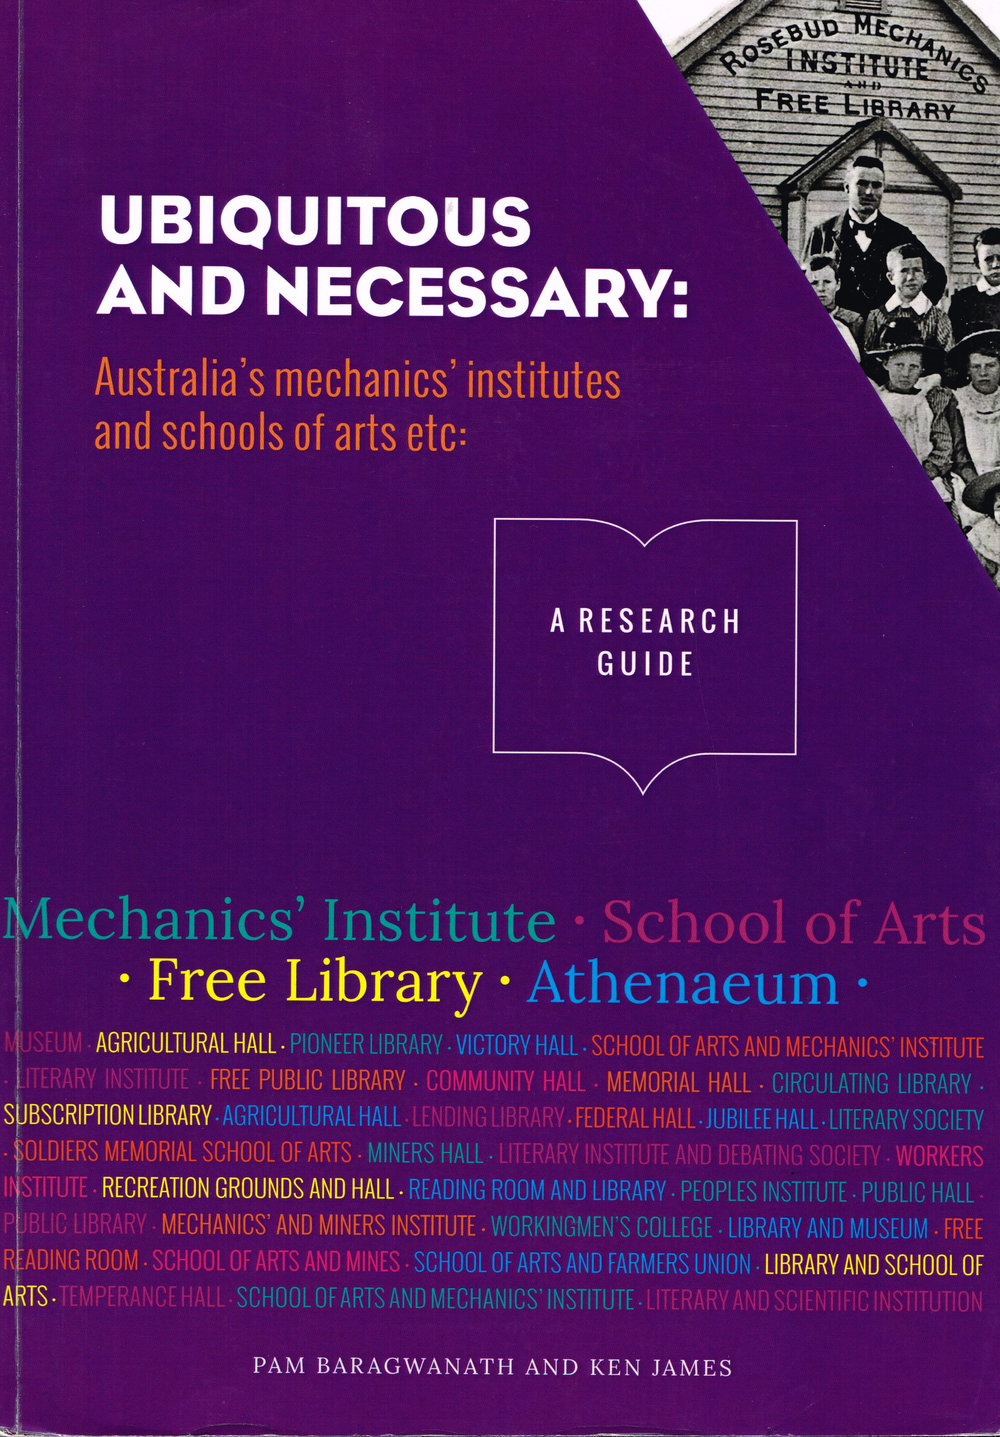 Ubiquitous and Necessary : Australia's mechanics' institutes and schools of arts etc  Pam Baragwanath and Ken James